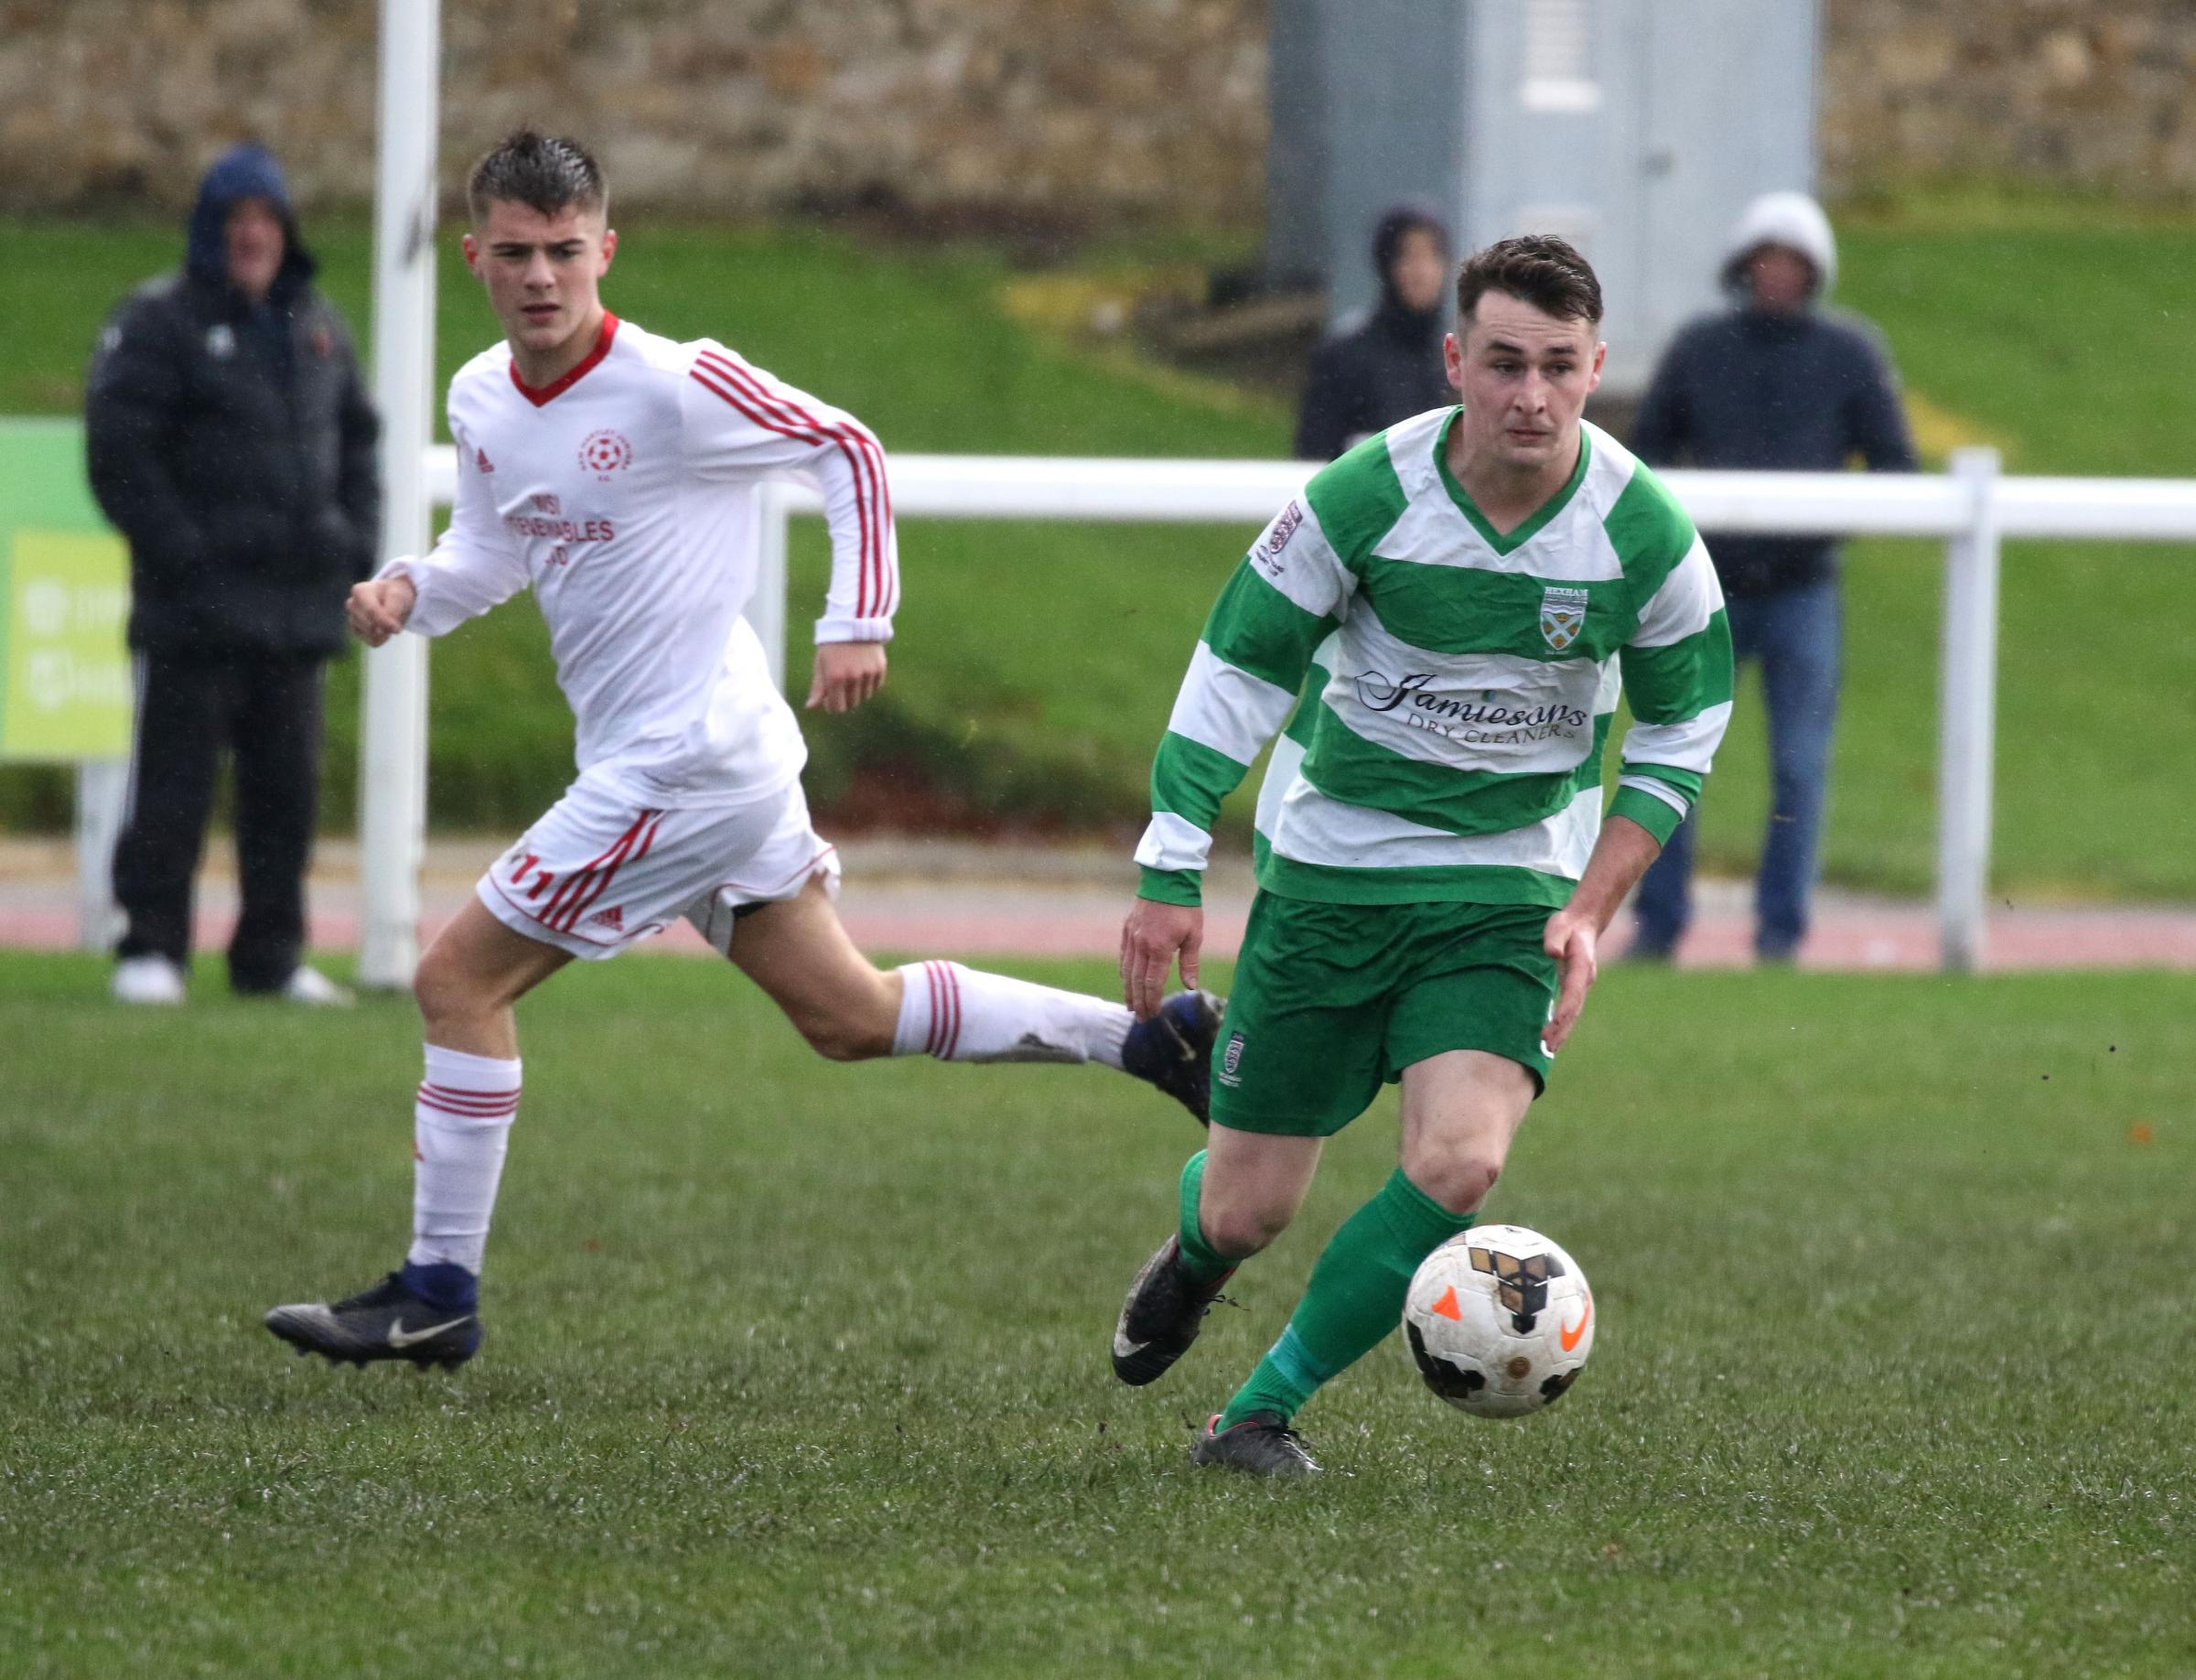 Robbie Pattison (right) opened the scoring for Hexham. Photo: PAUL NORRIS